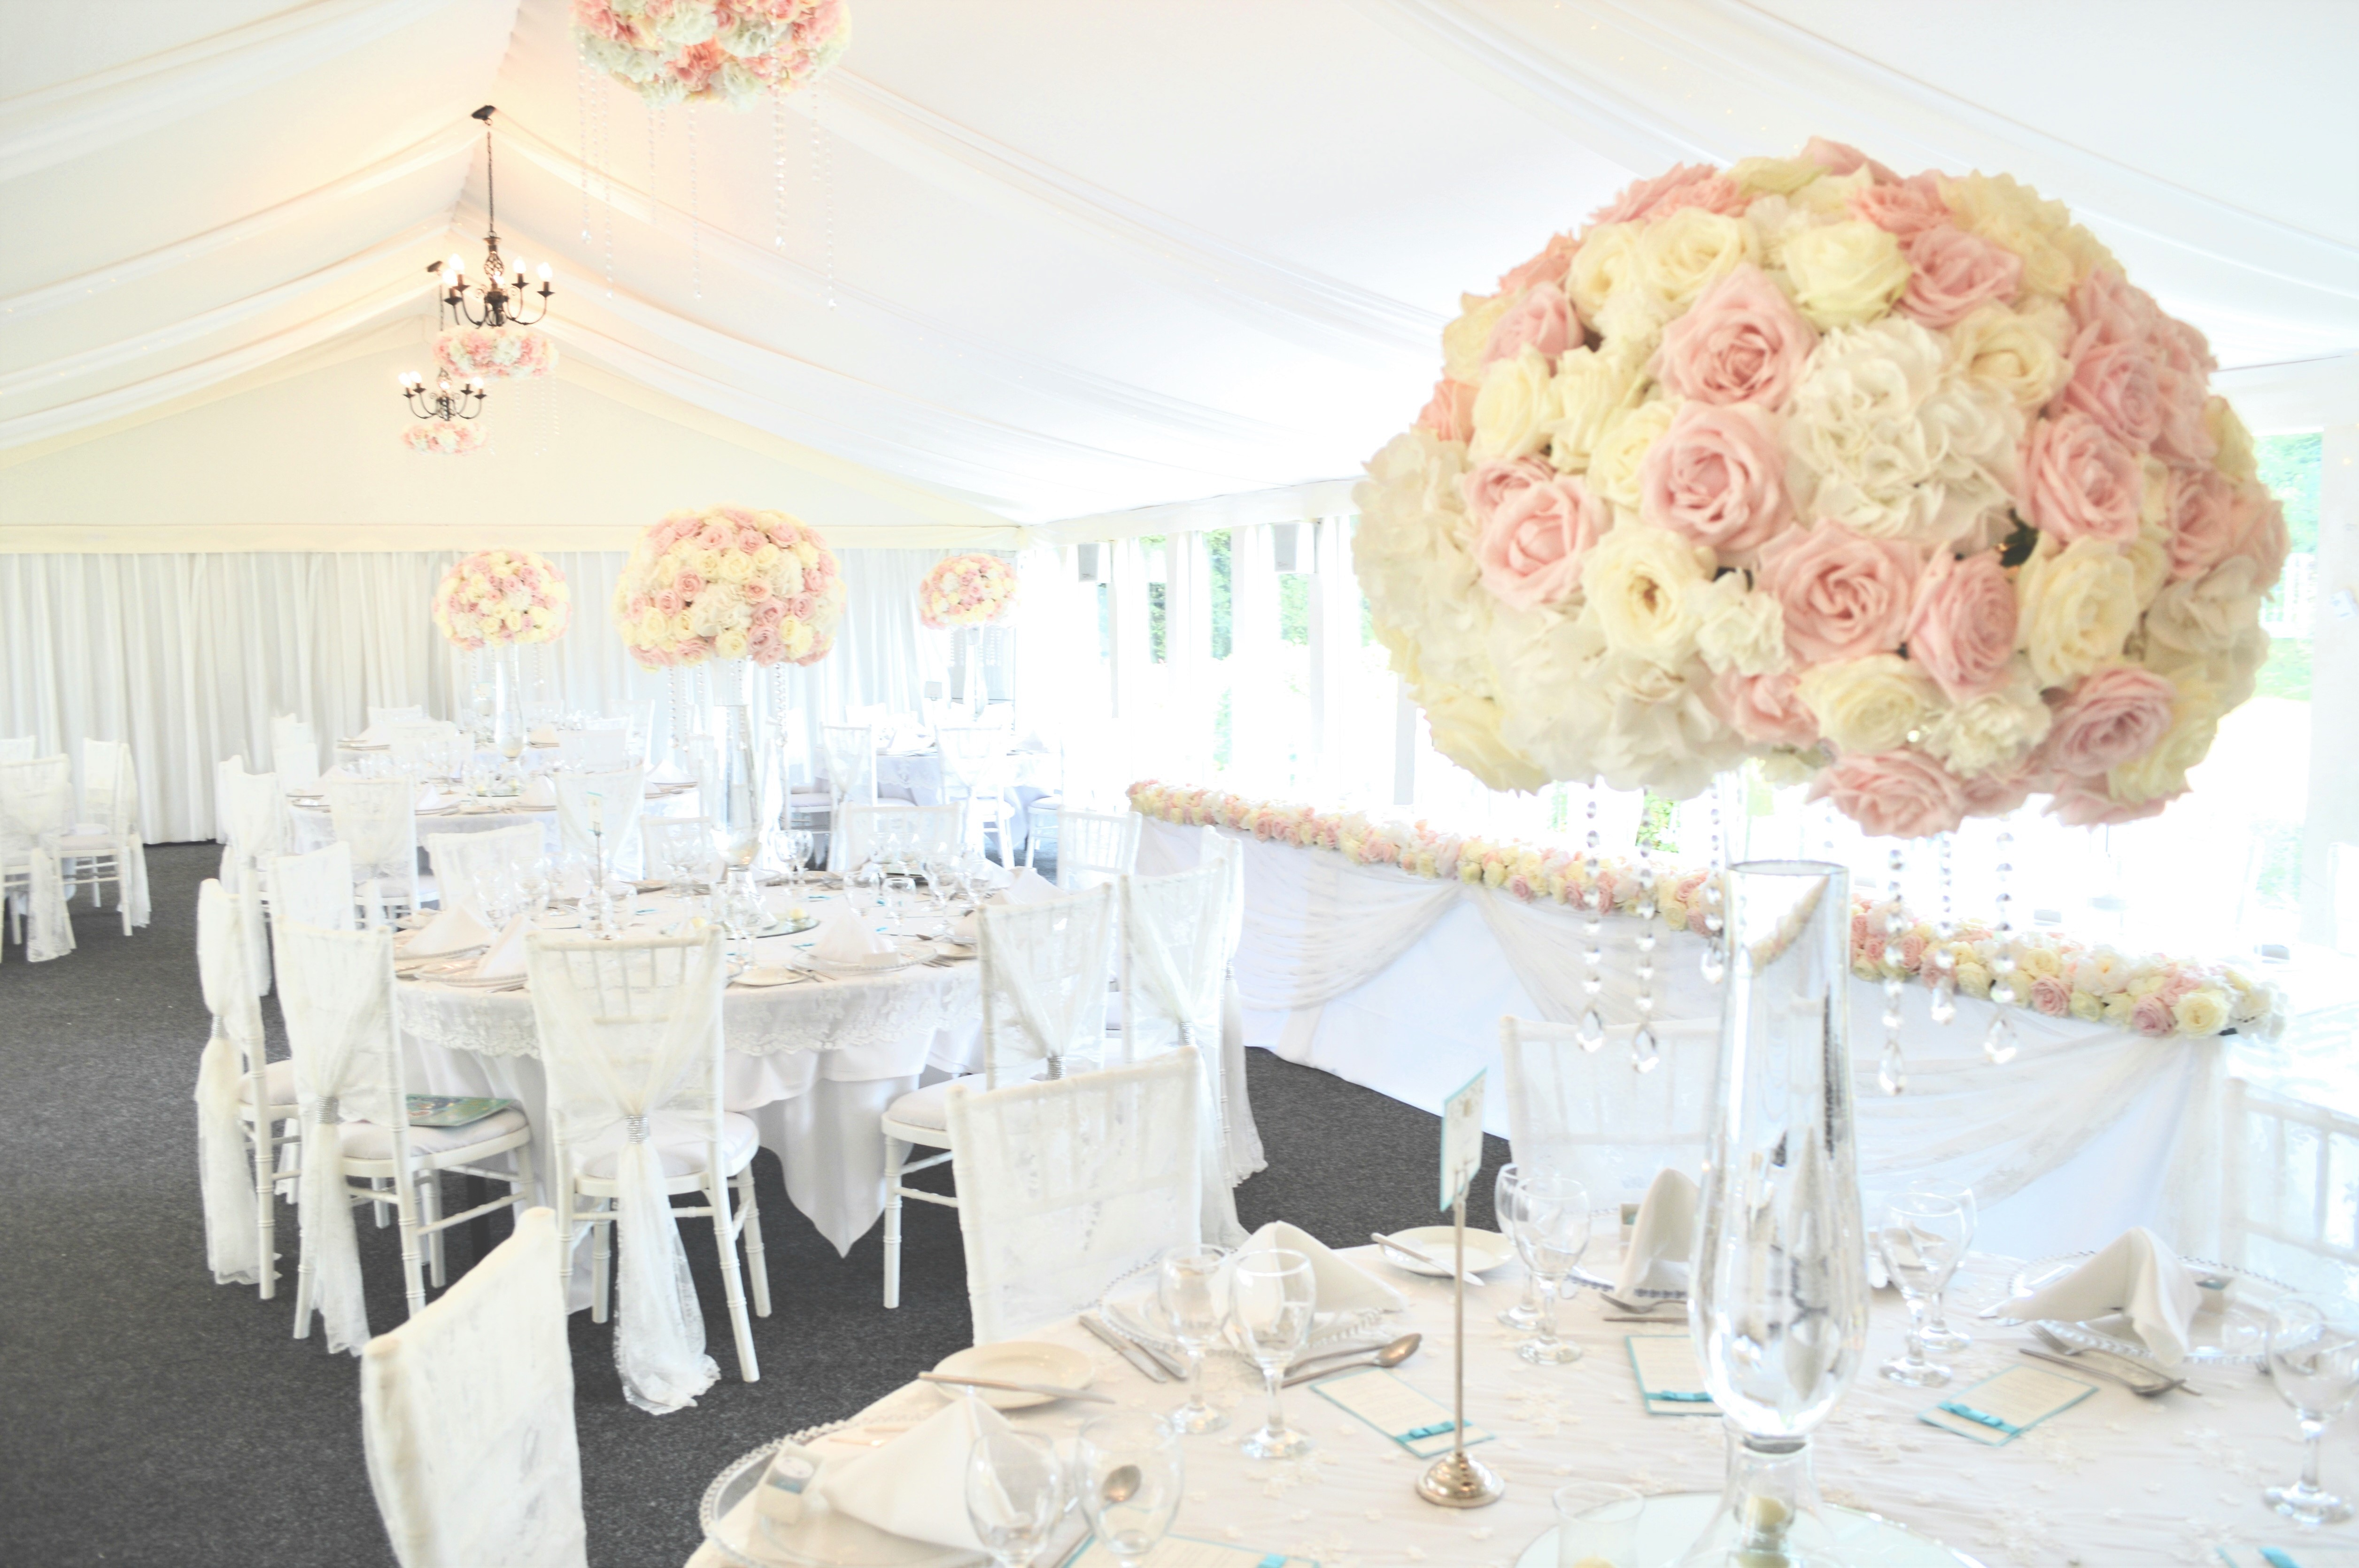 Luxury Blush Pink and White Wedding Flowers and Cake at Hunton Park Peony Hydrangeas and Roses Tall Vase Centrepieces with Crystals and Floral Chandelier Cherie Kelly Cake London 8